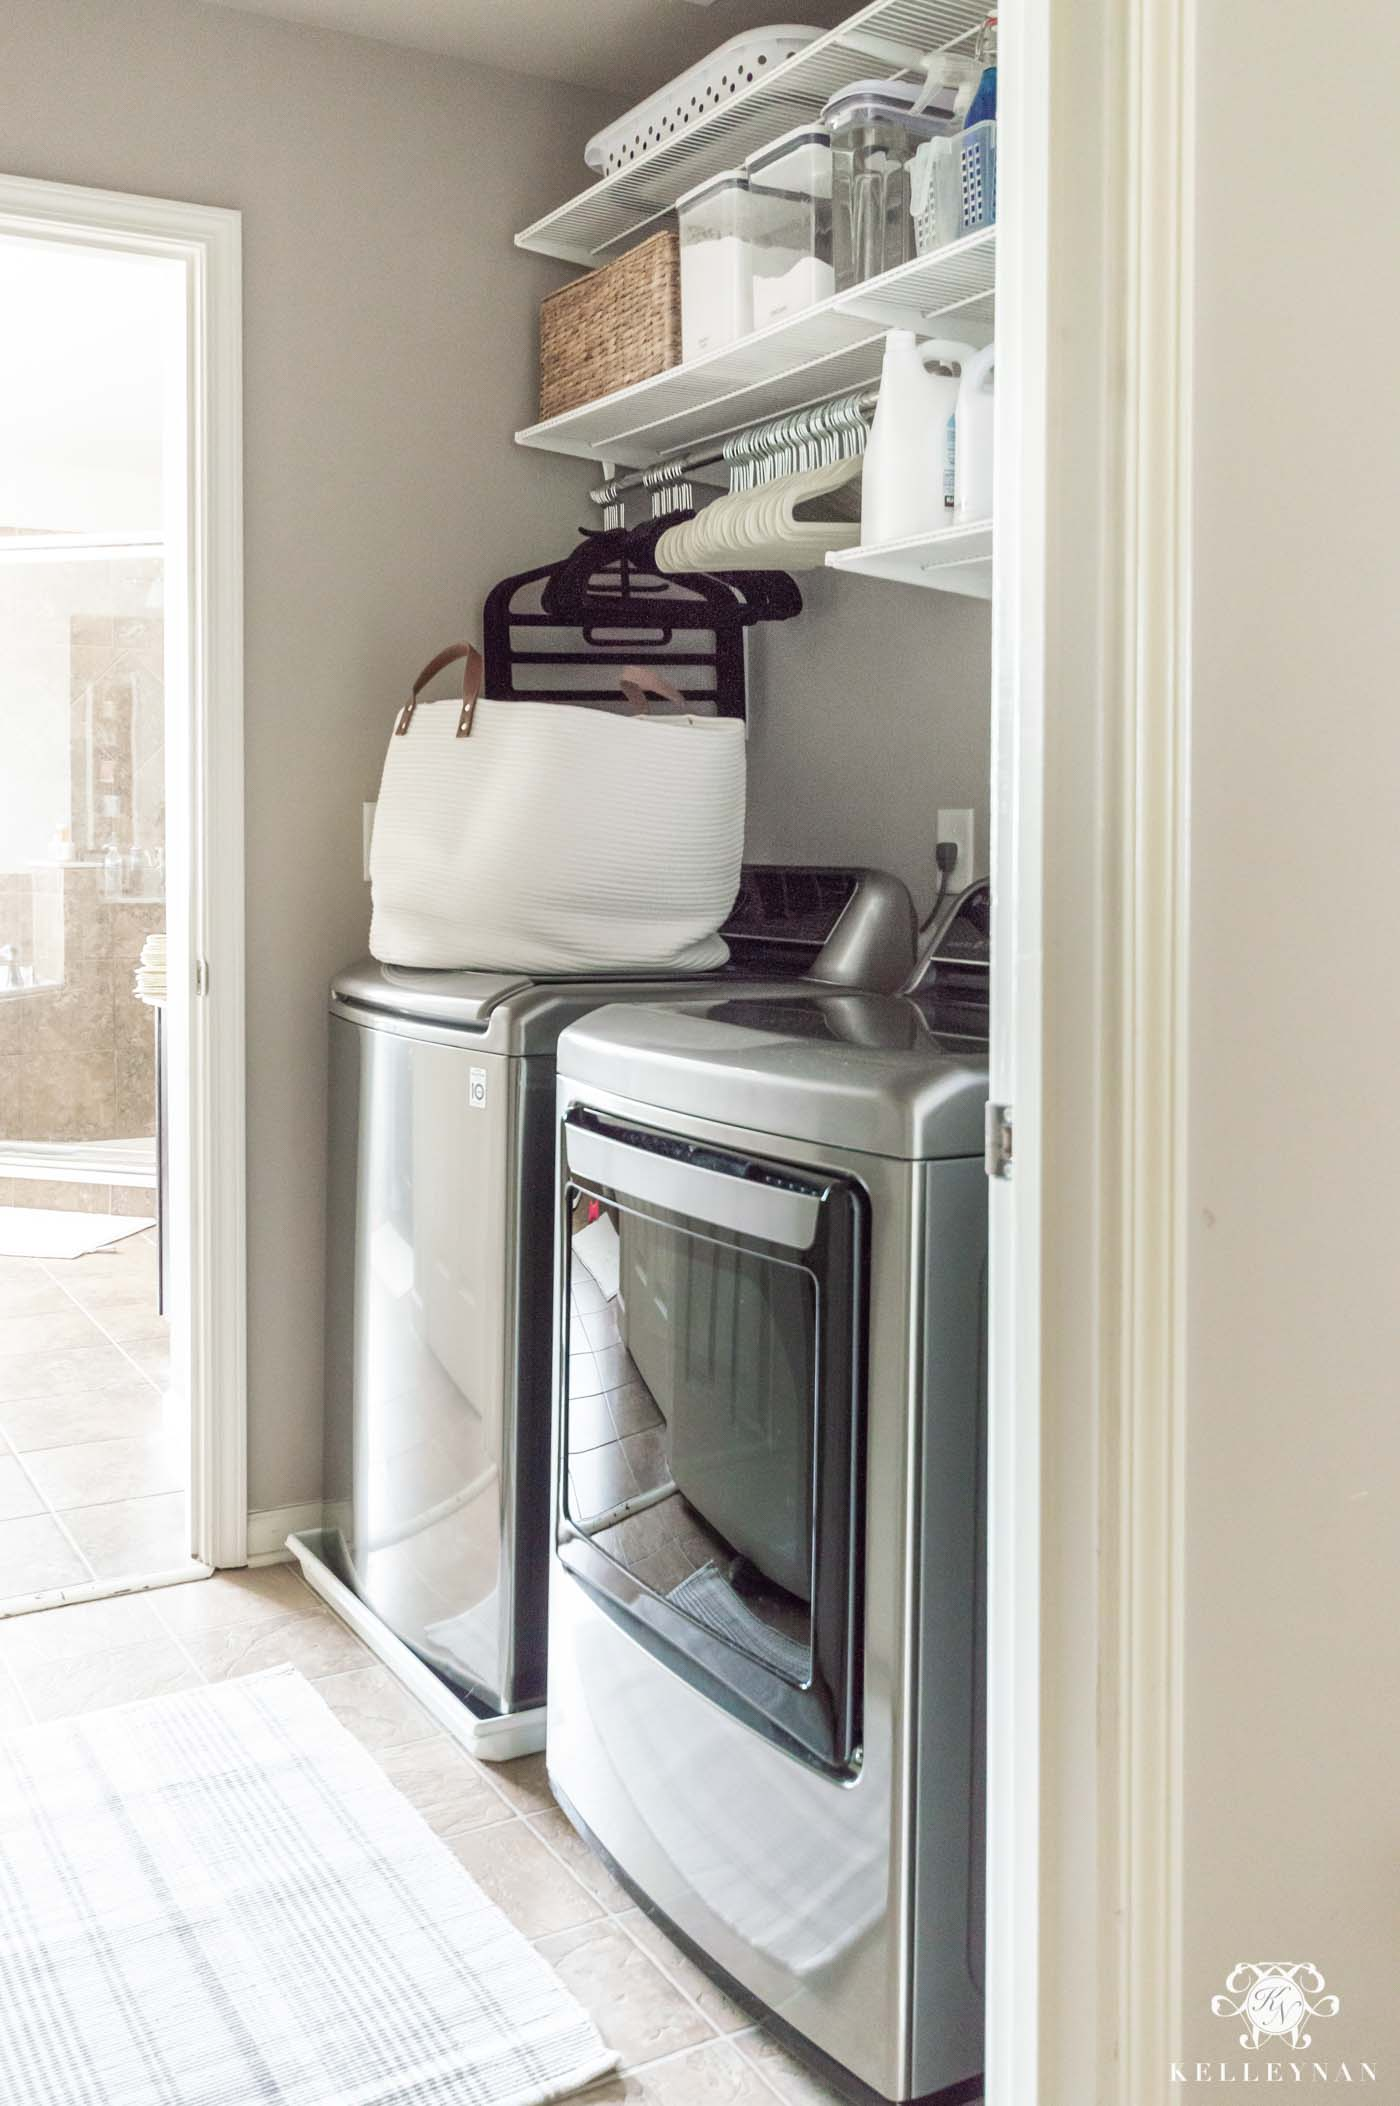 How to Organize a Small Laundry Room Pass Through